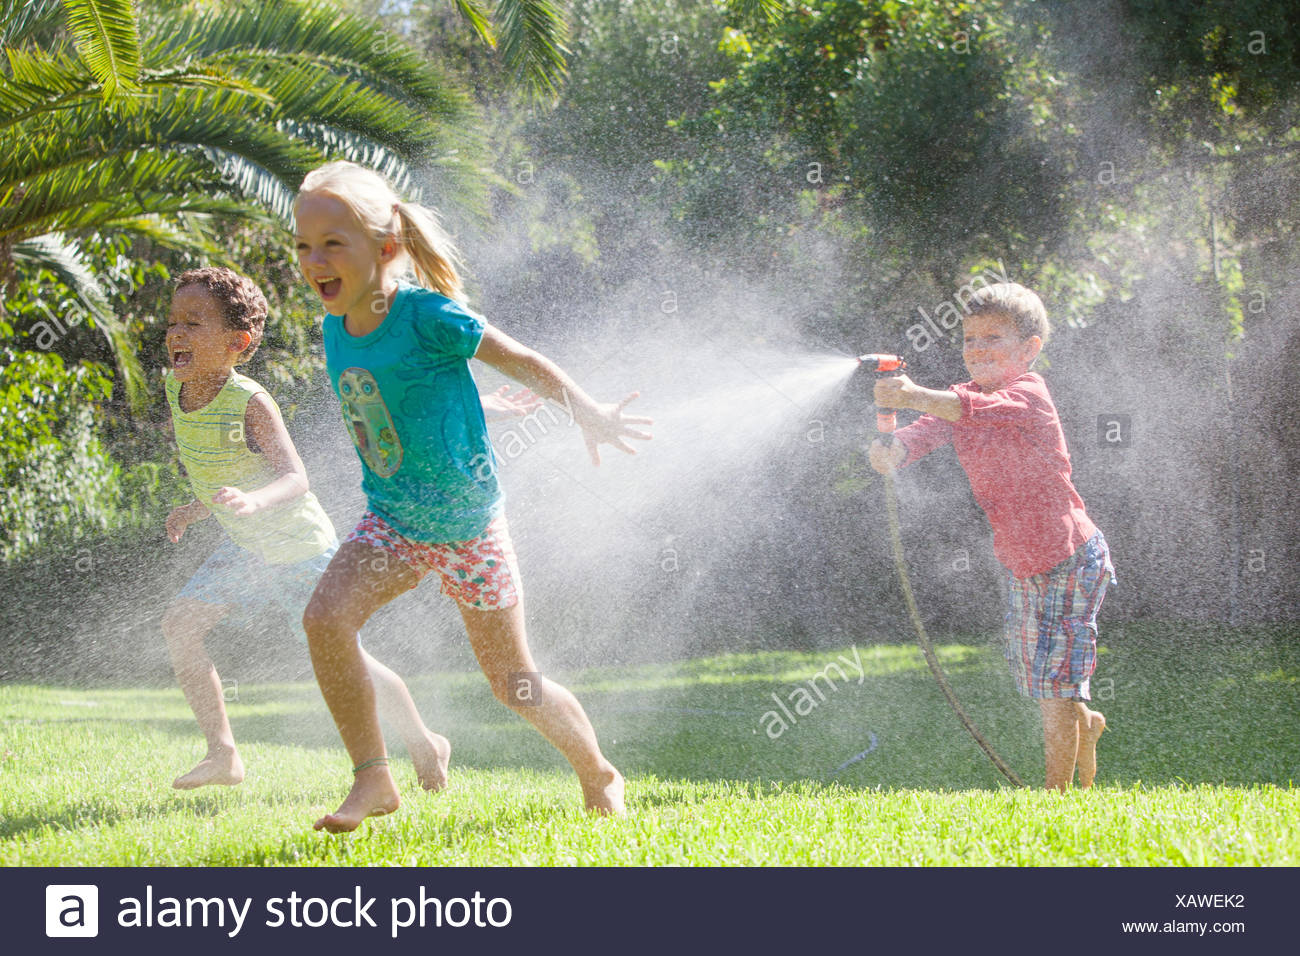 Three children in garden chasing each other with water sprinkler - Stock Image